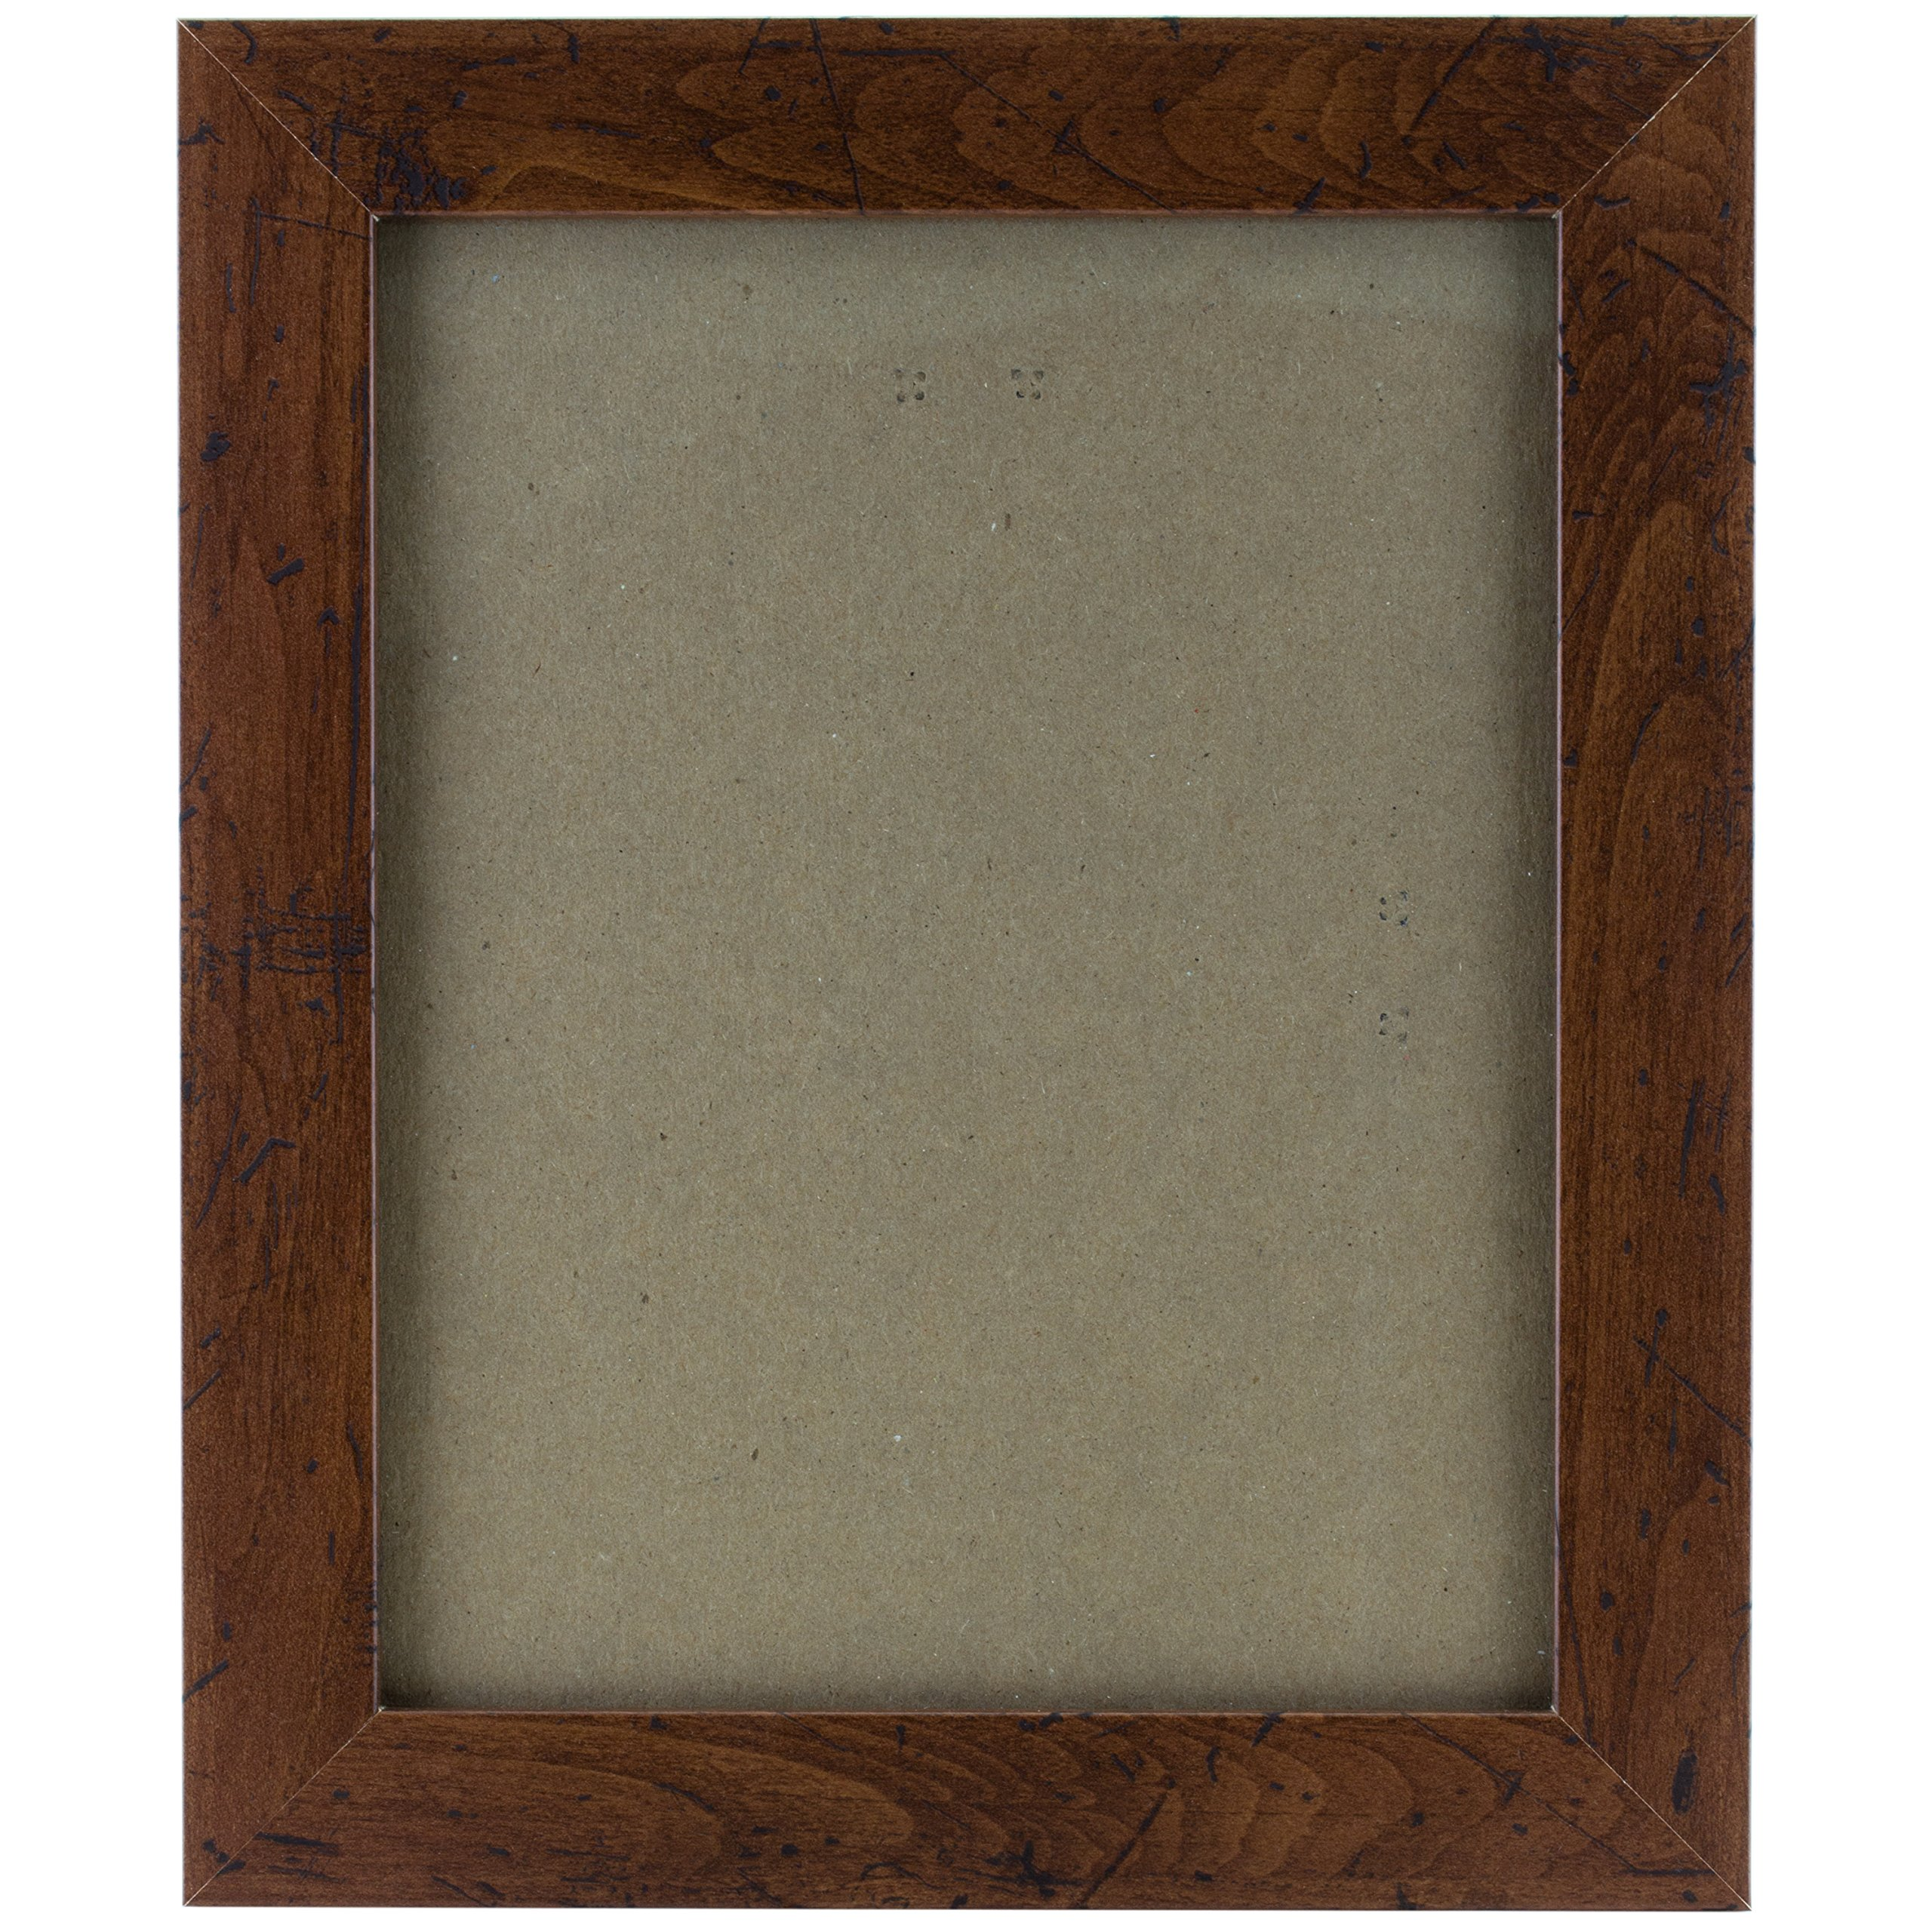 Craig Frames FM26WA2436C 1.26-Inch Wide Picture/Poster Frame in Smooth Grain Finish, 24 by 36-Inch, Dark Brown by Craig Frames